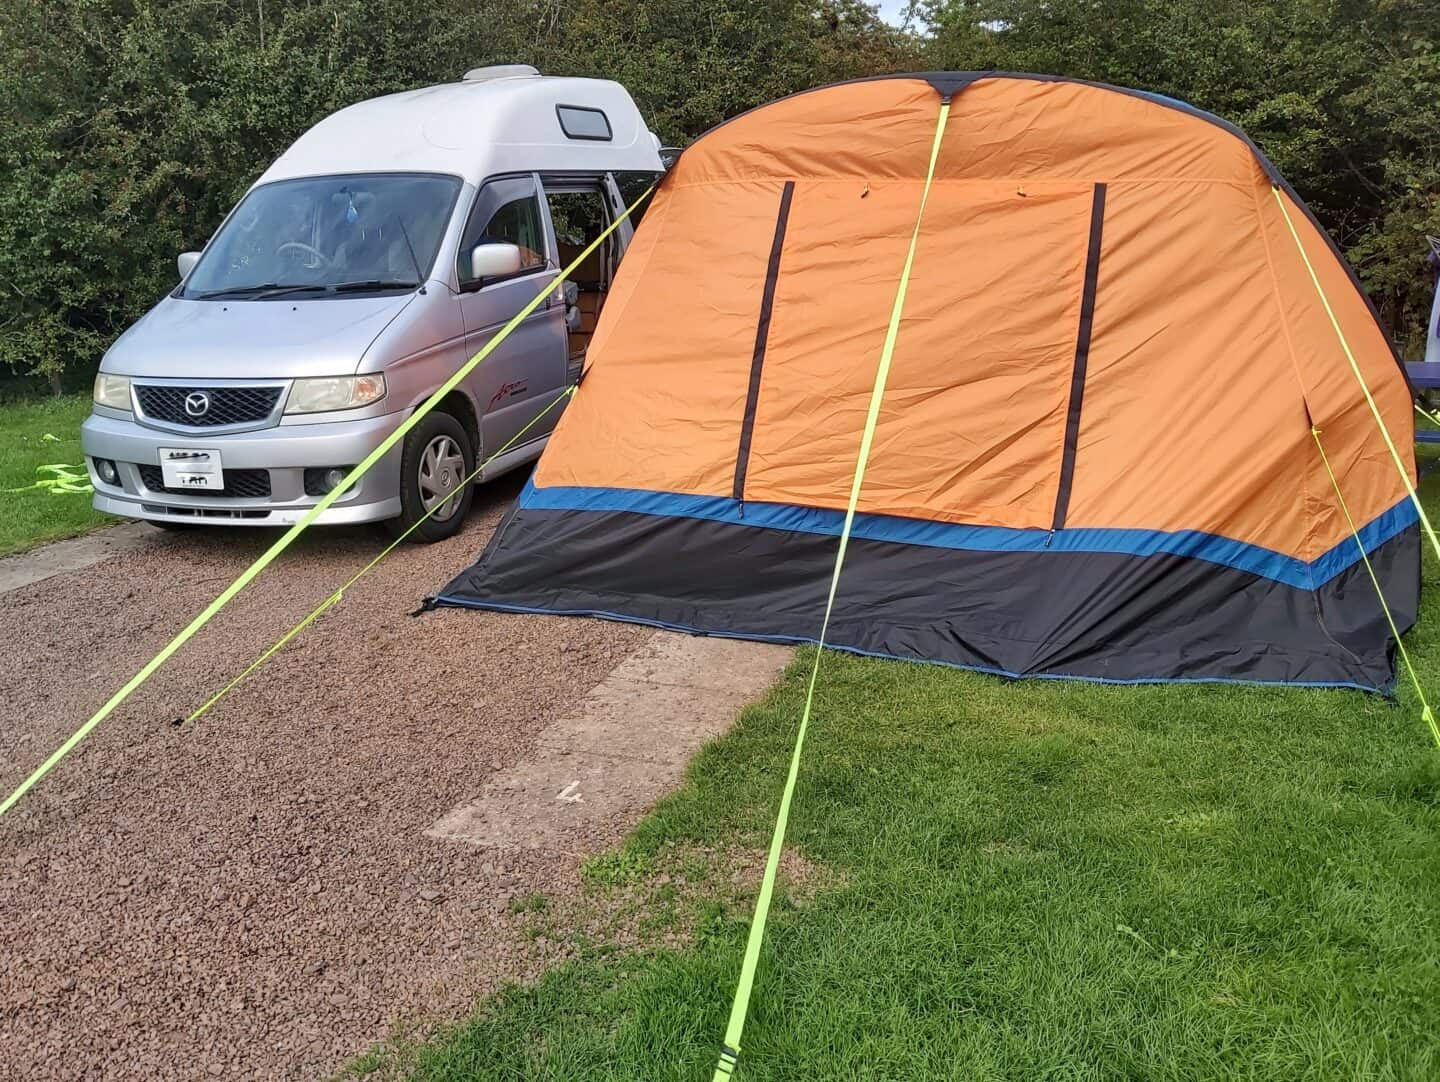 Olpro Cocoon Breeze inflatable drive away campervan awning review [AD]